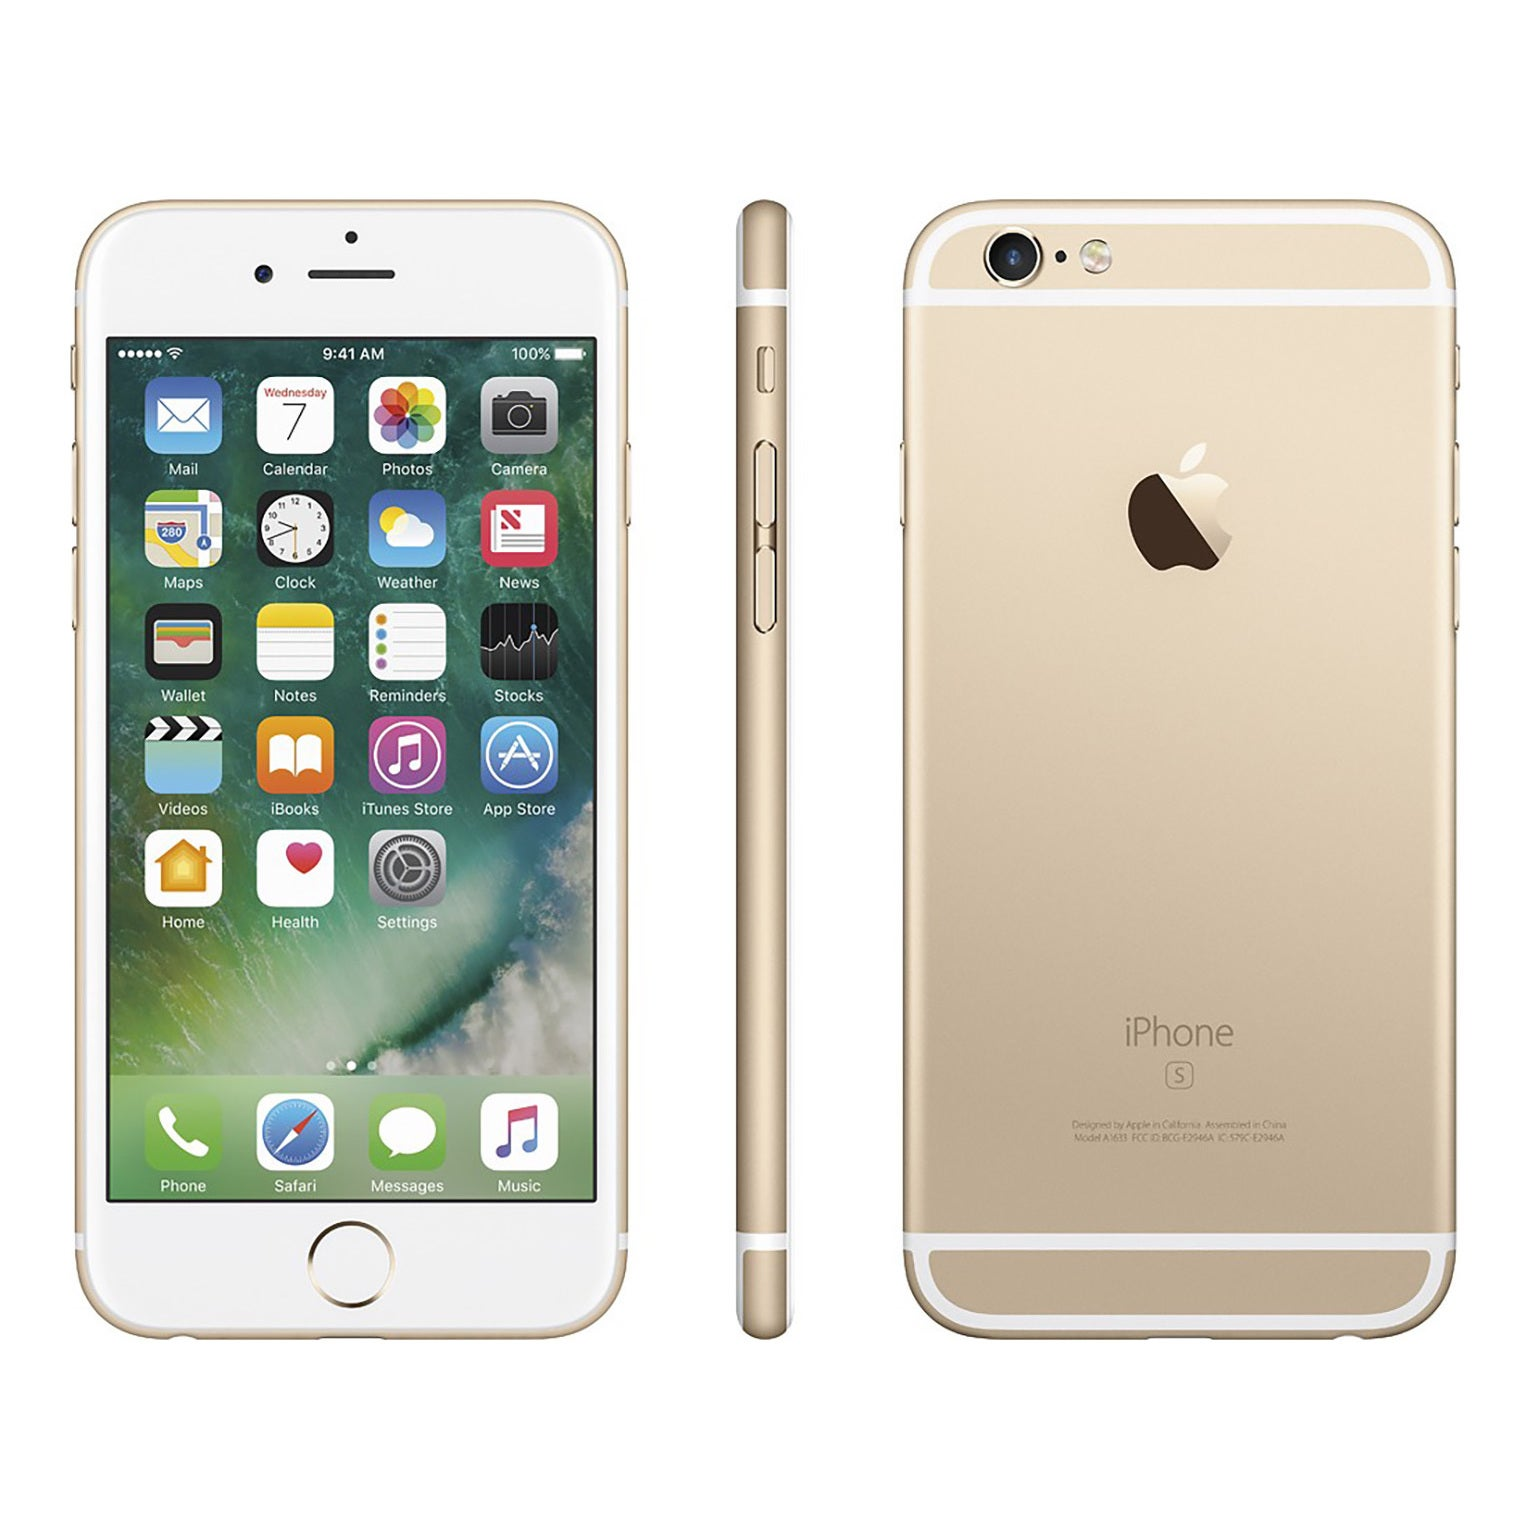 Shop Apple Iphone 6s 64gb Gsm 4g Lte Dual Core Phone W 12mp Isight Camera Gold 29 Ultra Mobile Sim 6 Month Plan Refurbished Overstock 14505087